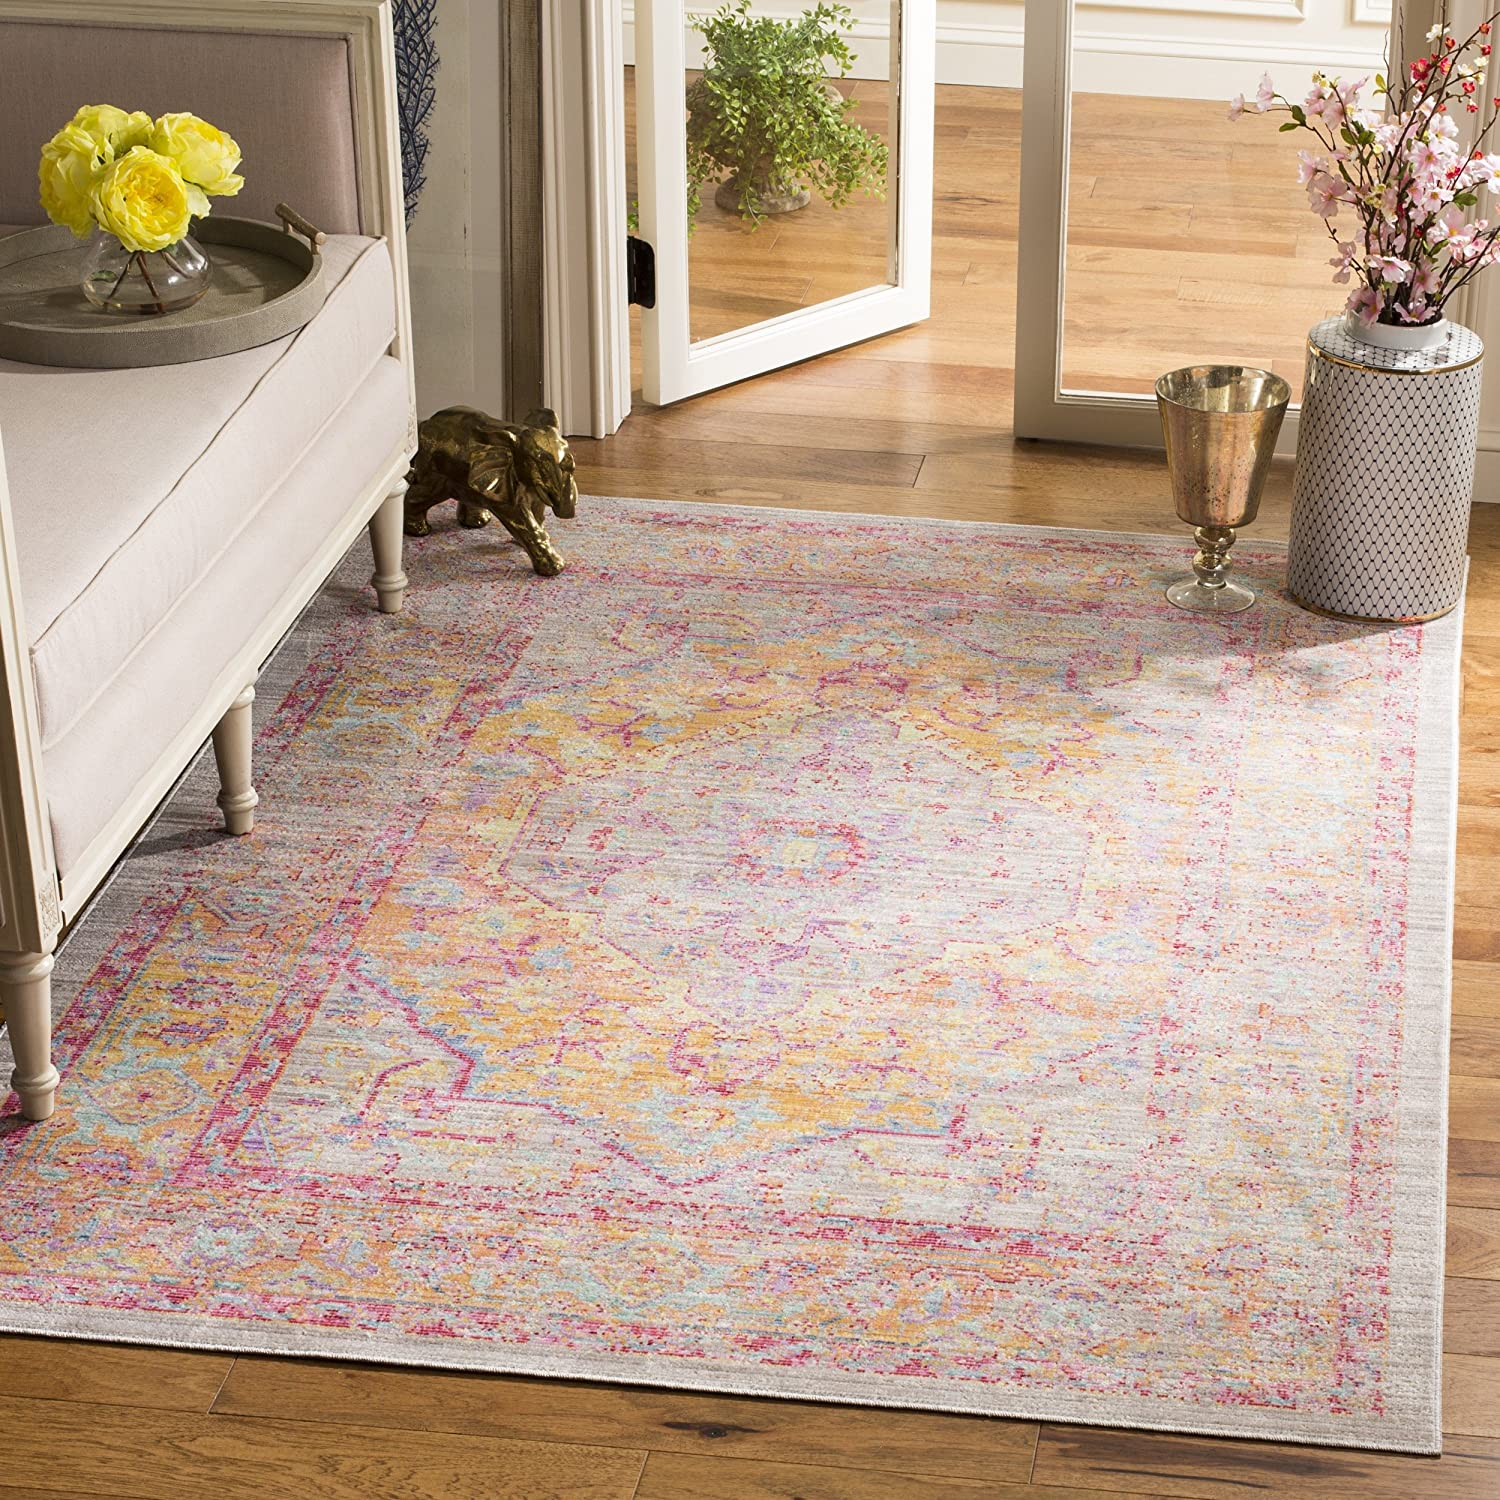 Safavieh Windsor Collection WDS307C Distressed Shabby Choice Chic Boho San Francisco Mall